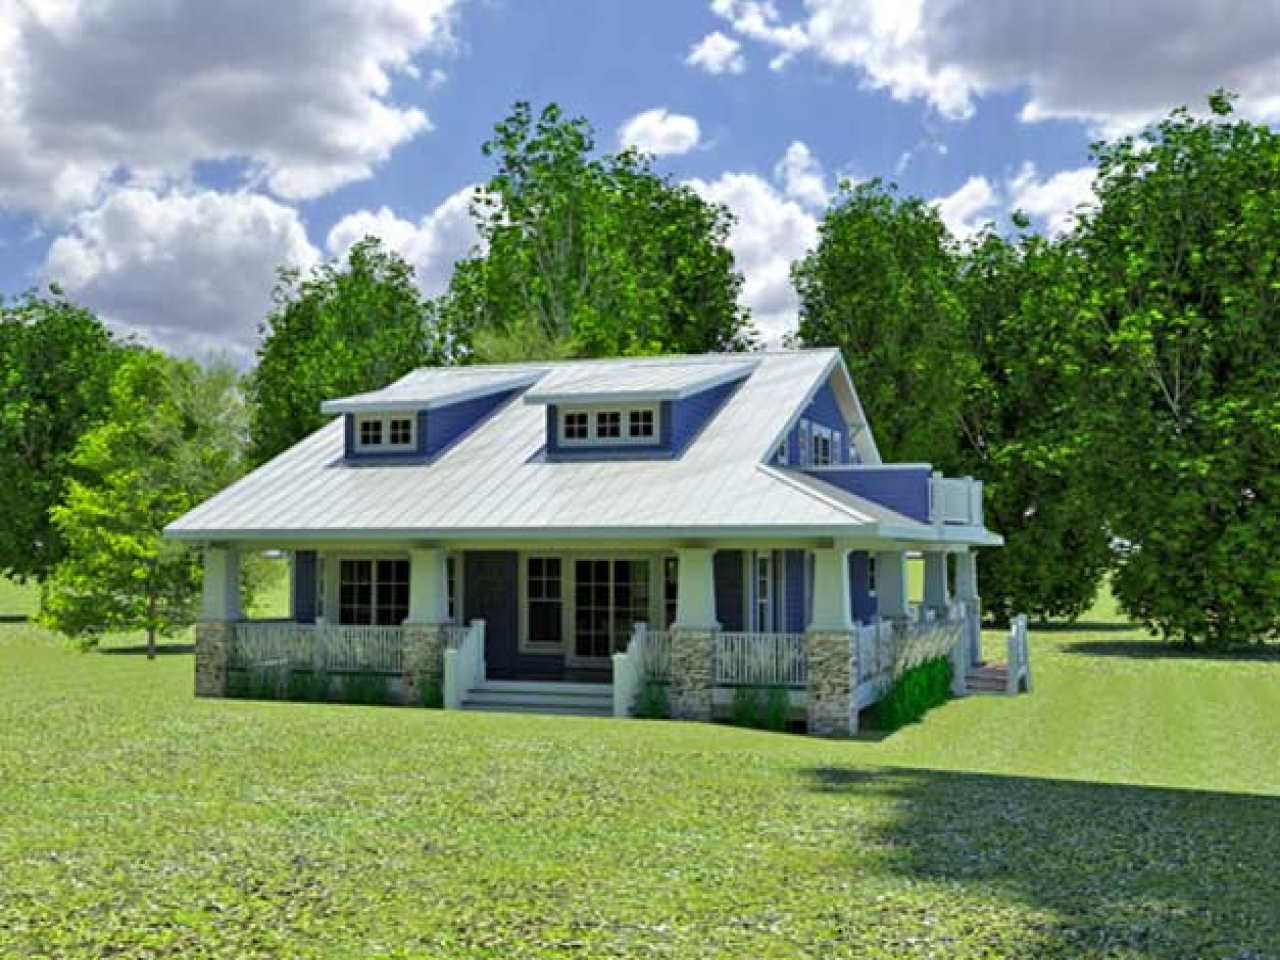 House plans for hillside lots vacation home plans hillside for House plans for hillside lots